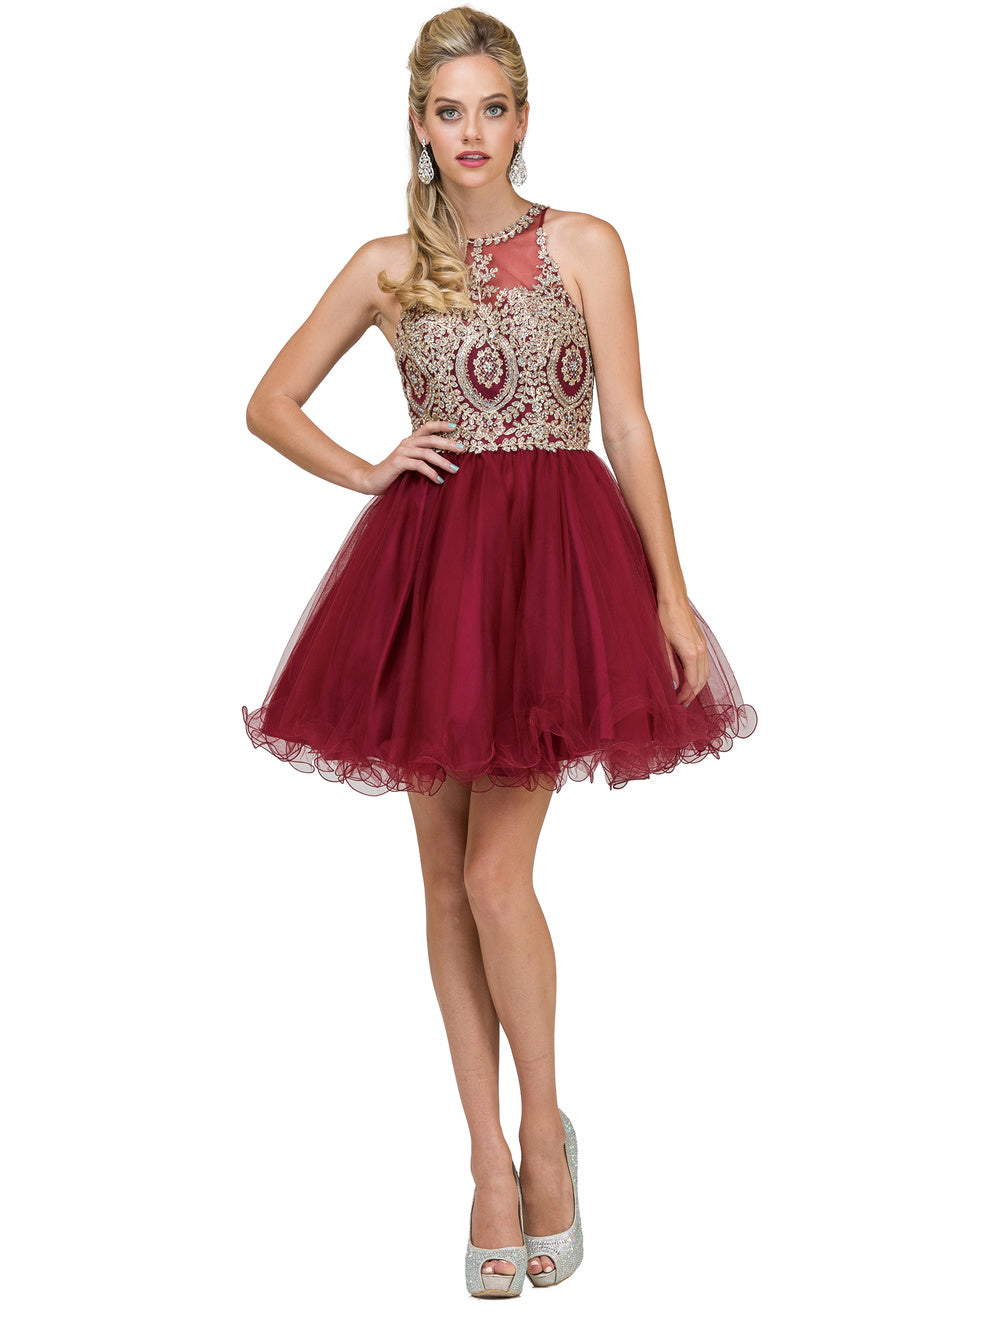 DQ 2156 - Lace-Applique High-Neck Homecoming Dress - Diggz Prom